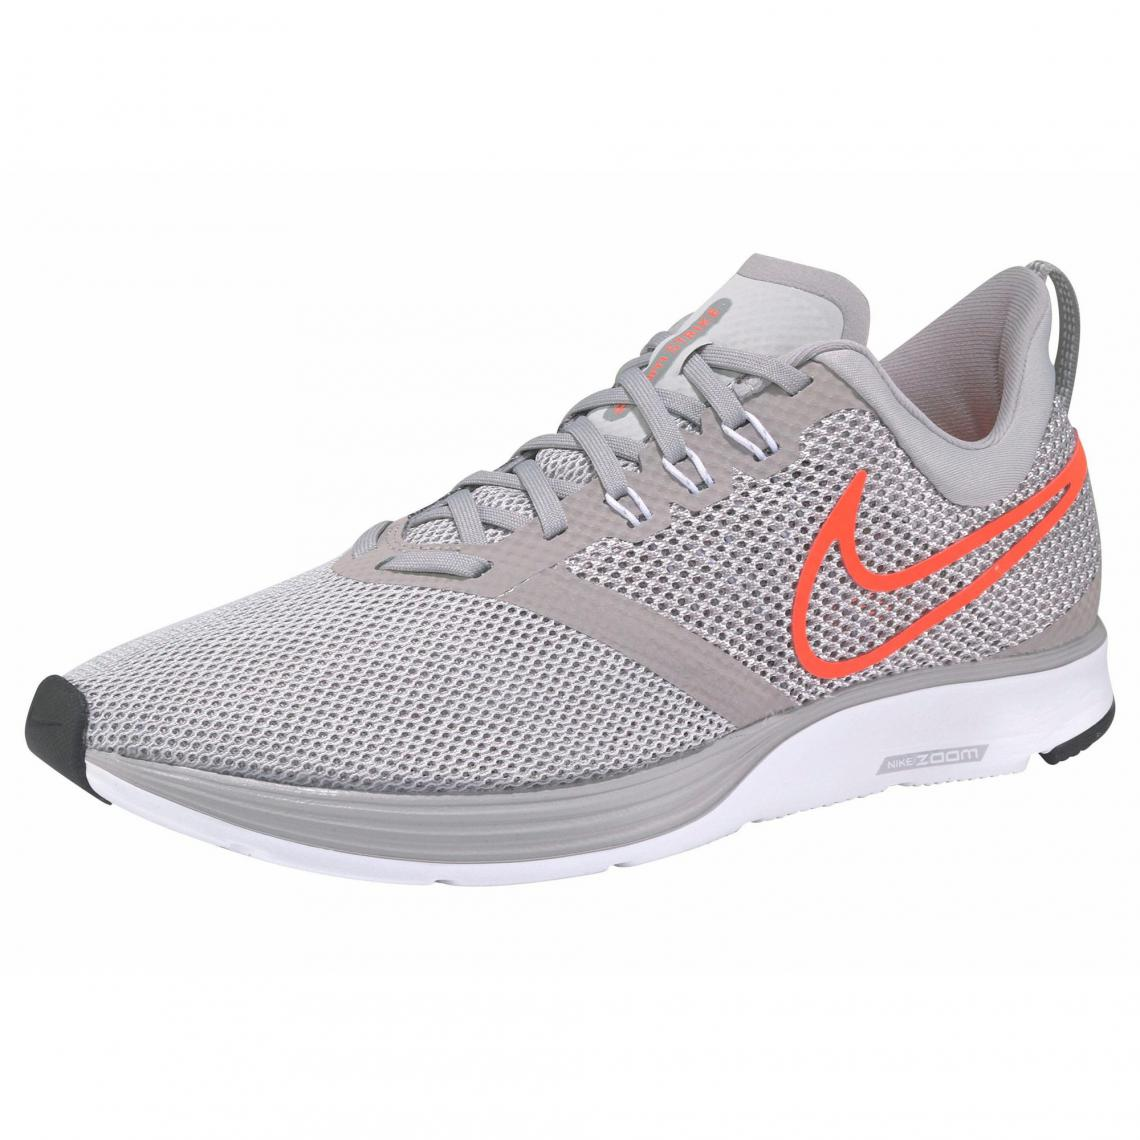 Chaussures Strike Running Zoom Homme Nike Gris 3suisses Blanc Pour qq7zpCcr